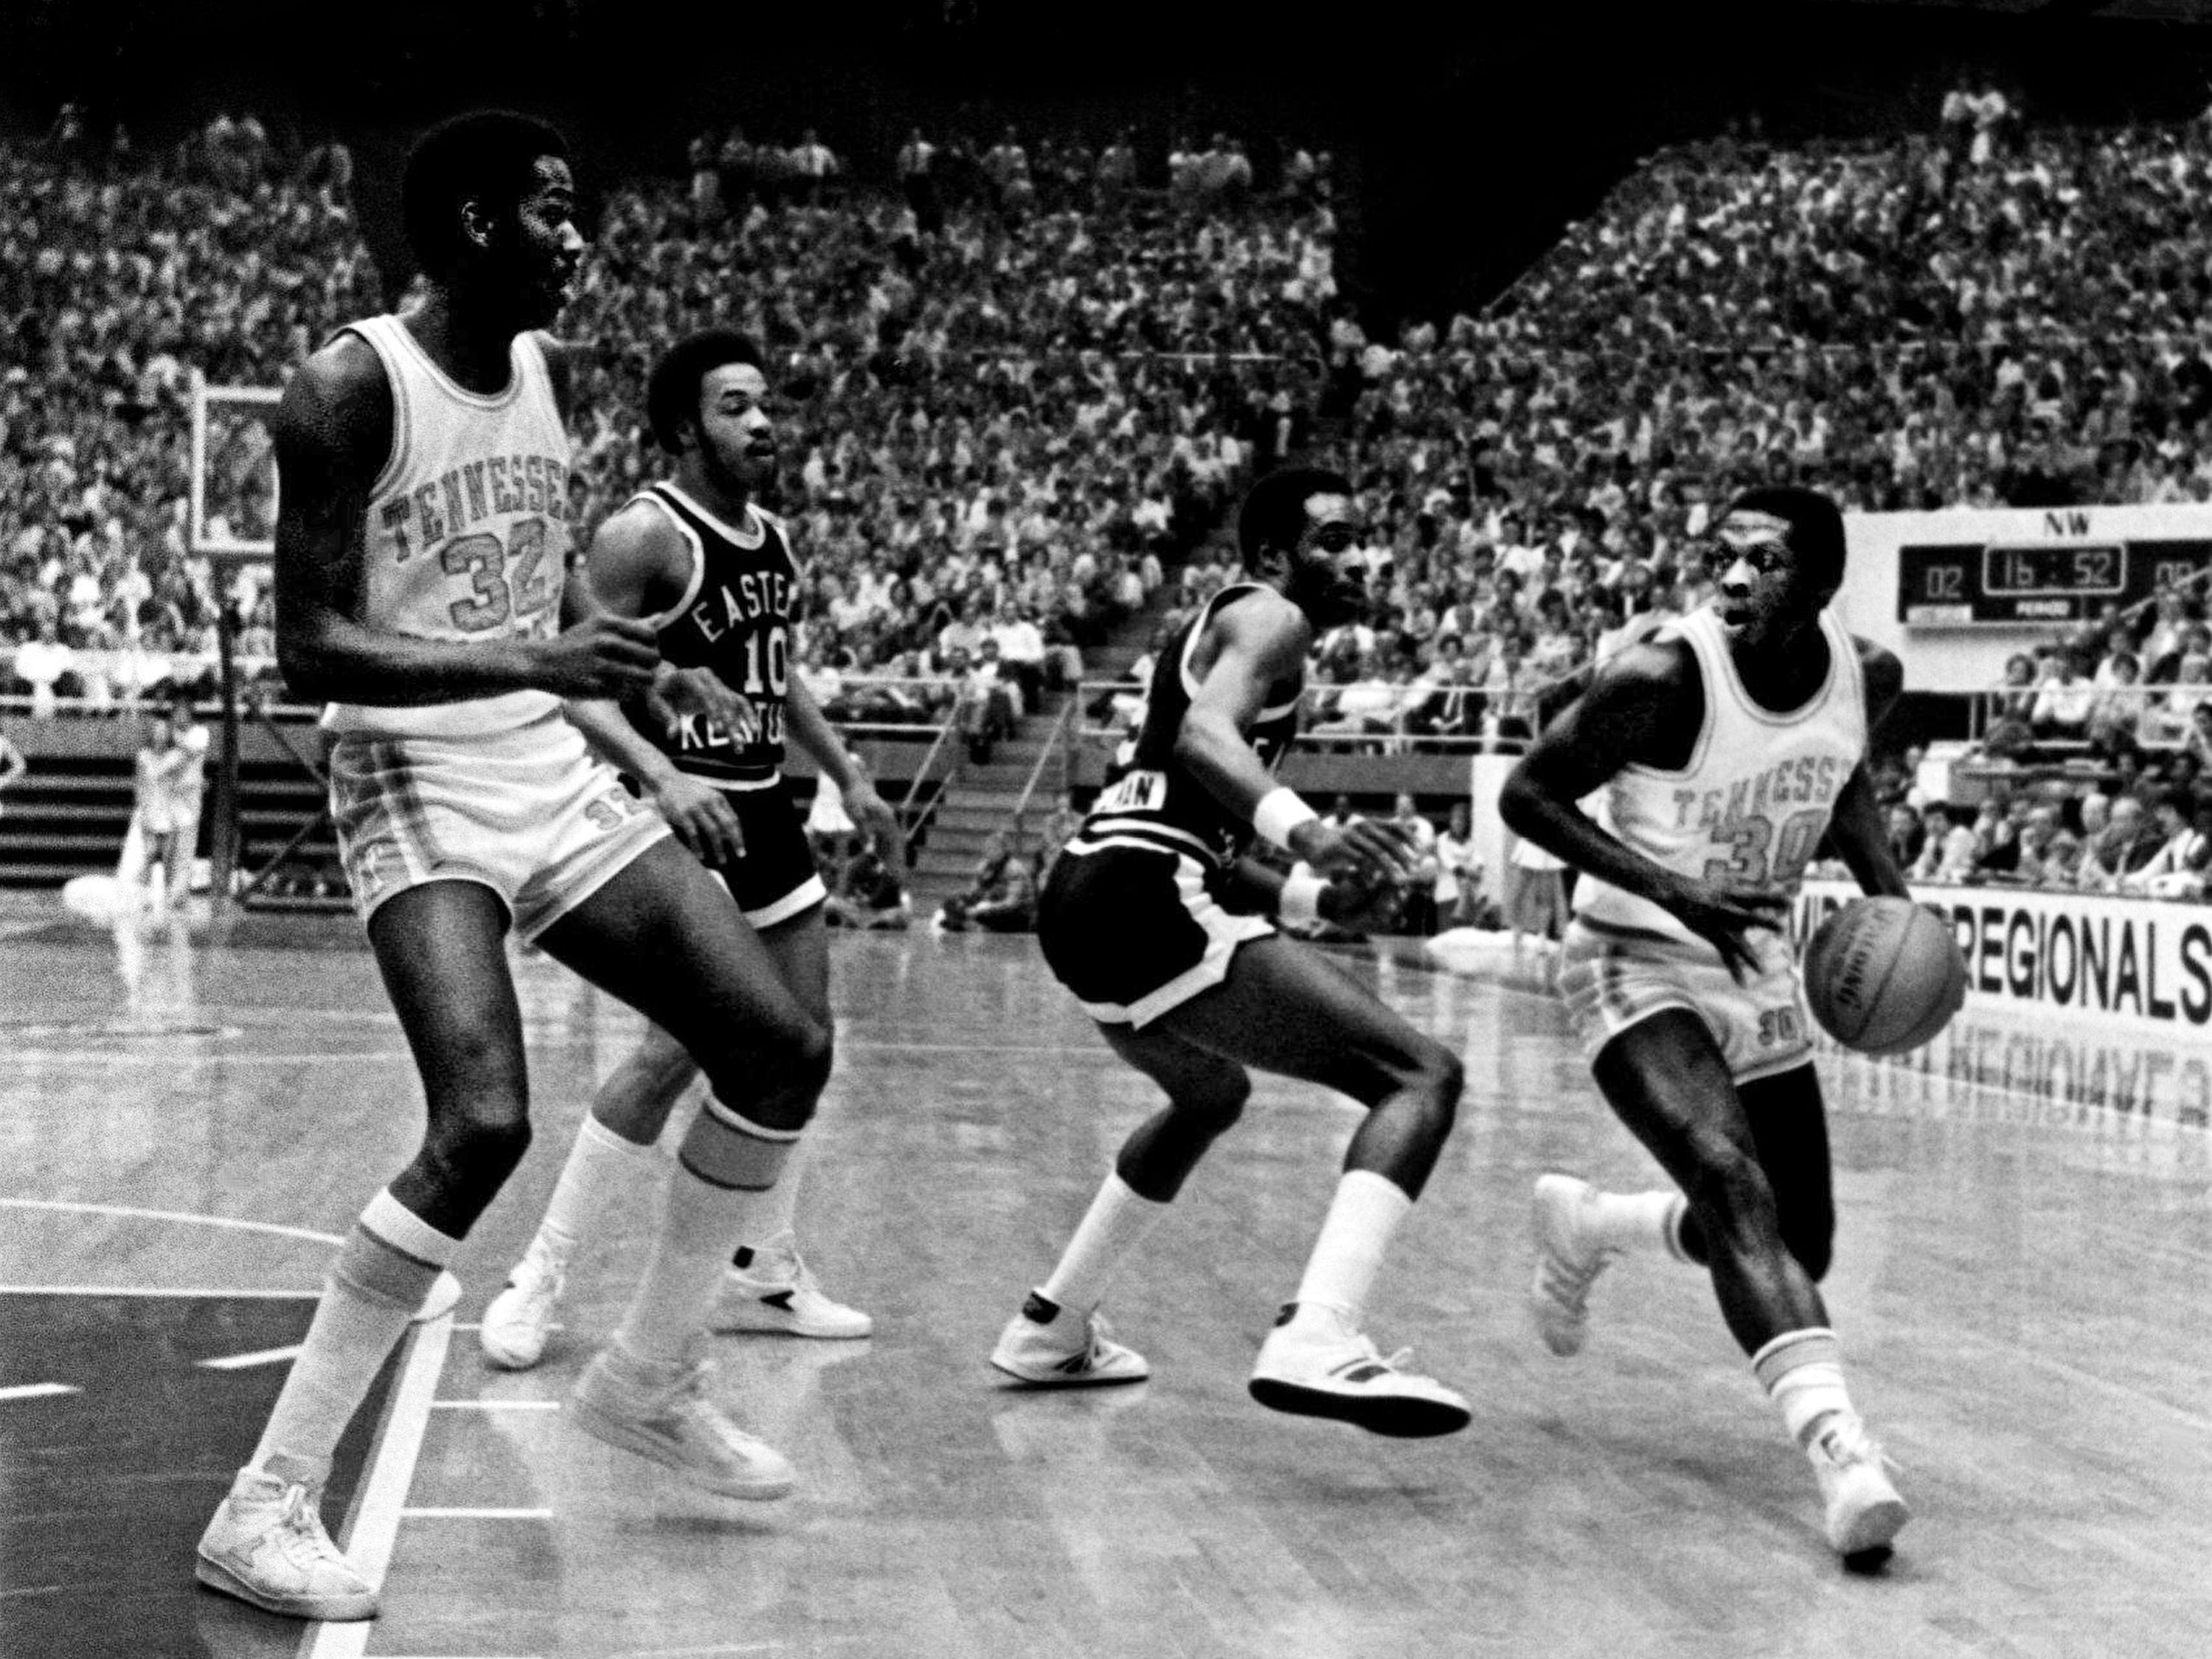 Tennessee guard Gary Carter (30) looks to pass to teammate Reggie Johnson (32) as they defeat Eastern Kentucky 97-81 in the NCAA Mideast Regional tournament at MTSU's Murphy Center in Murfreesboro on March 9, 1979.